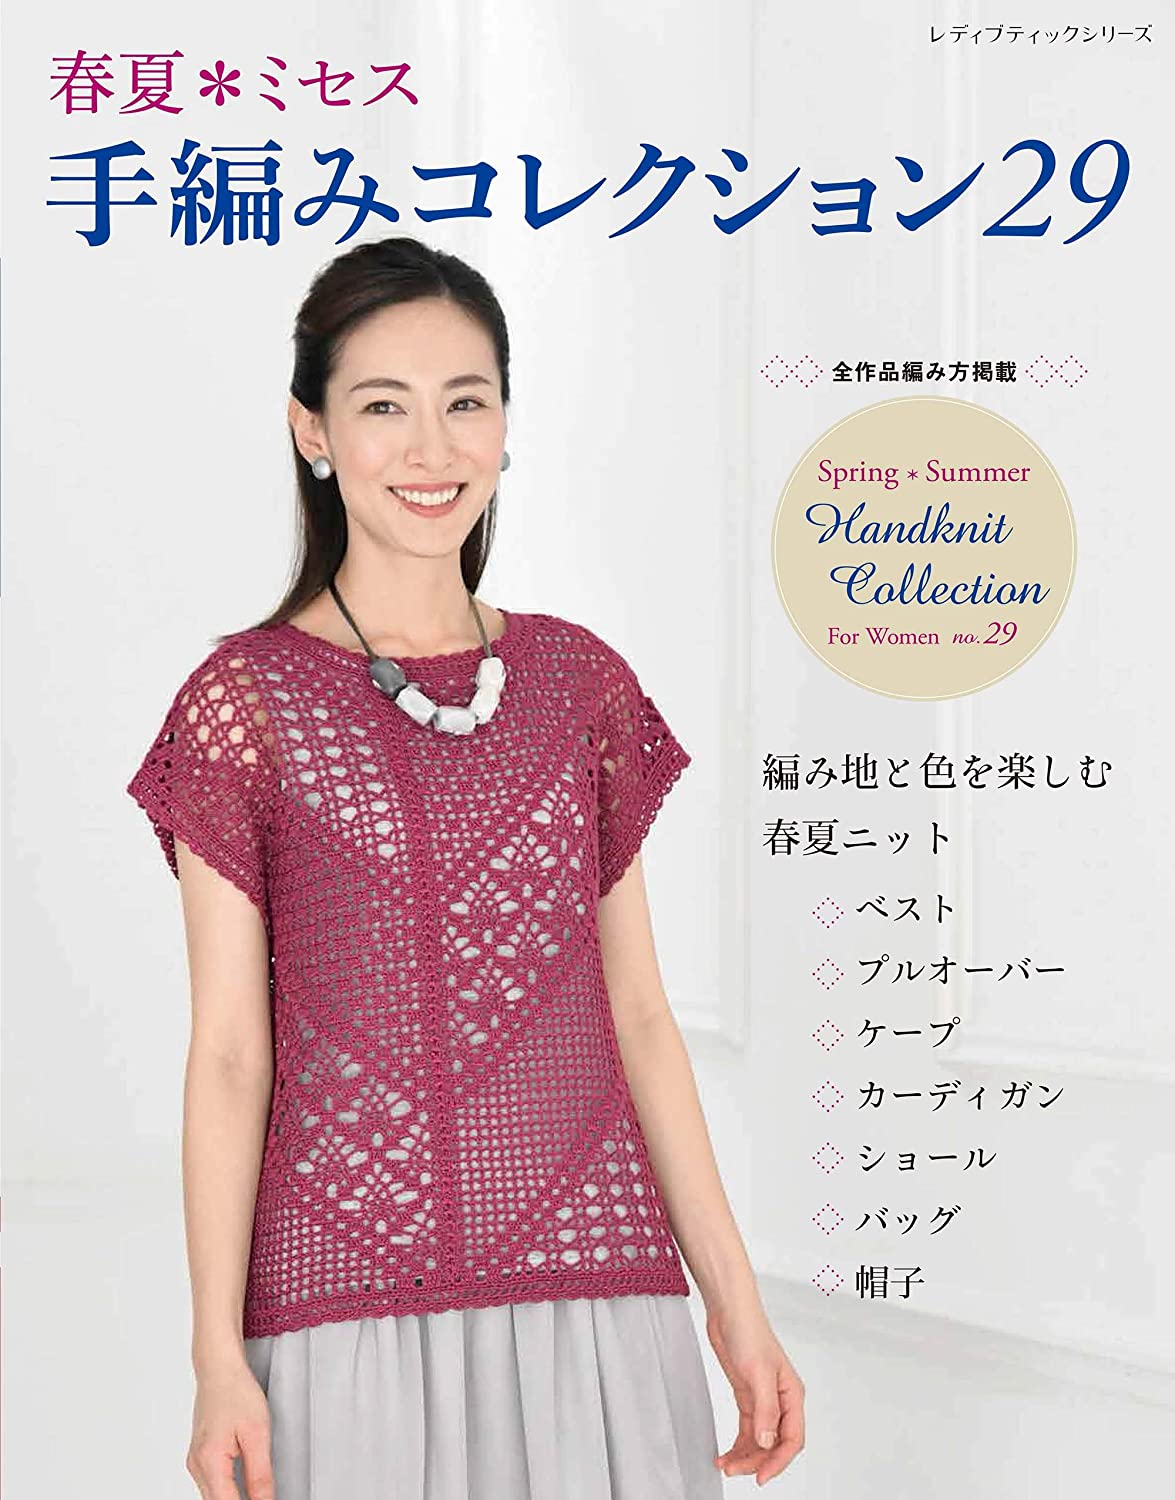 Spring / Summer * Mrs. Hand Knitting Collection 29